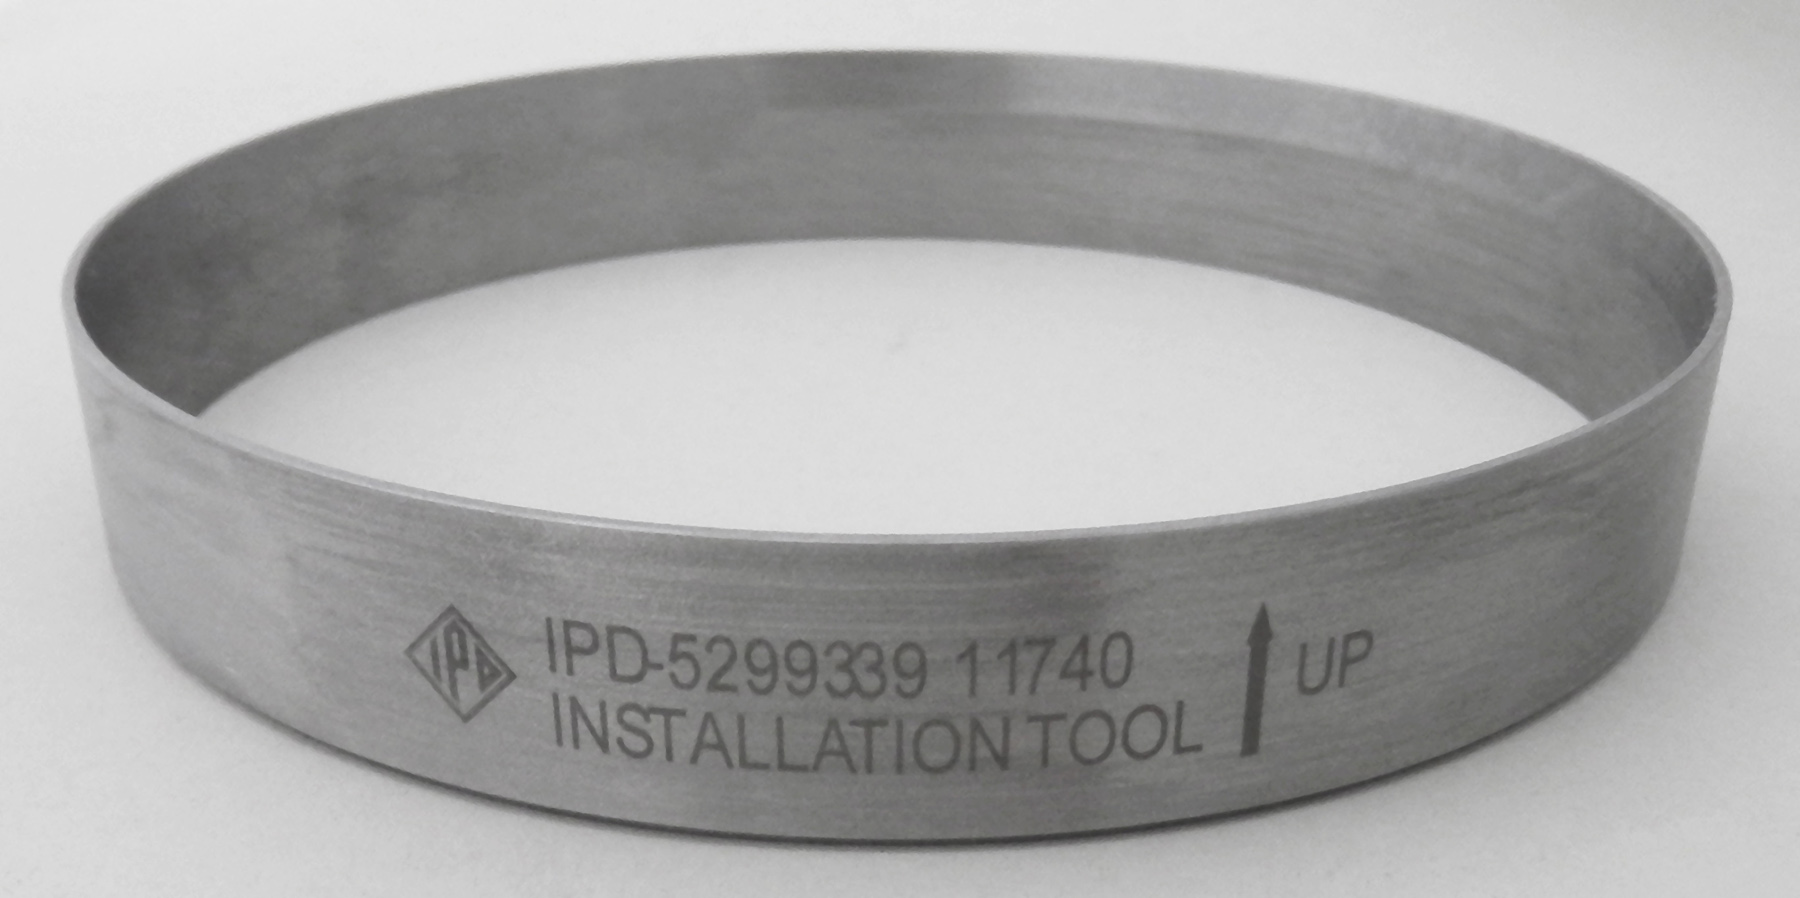 IPD Announces New Piston Installation Tool & Promotion for